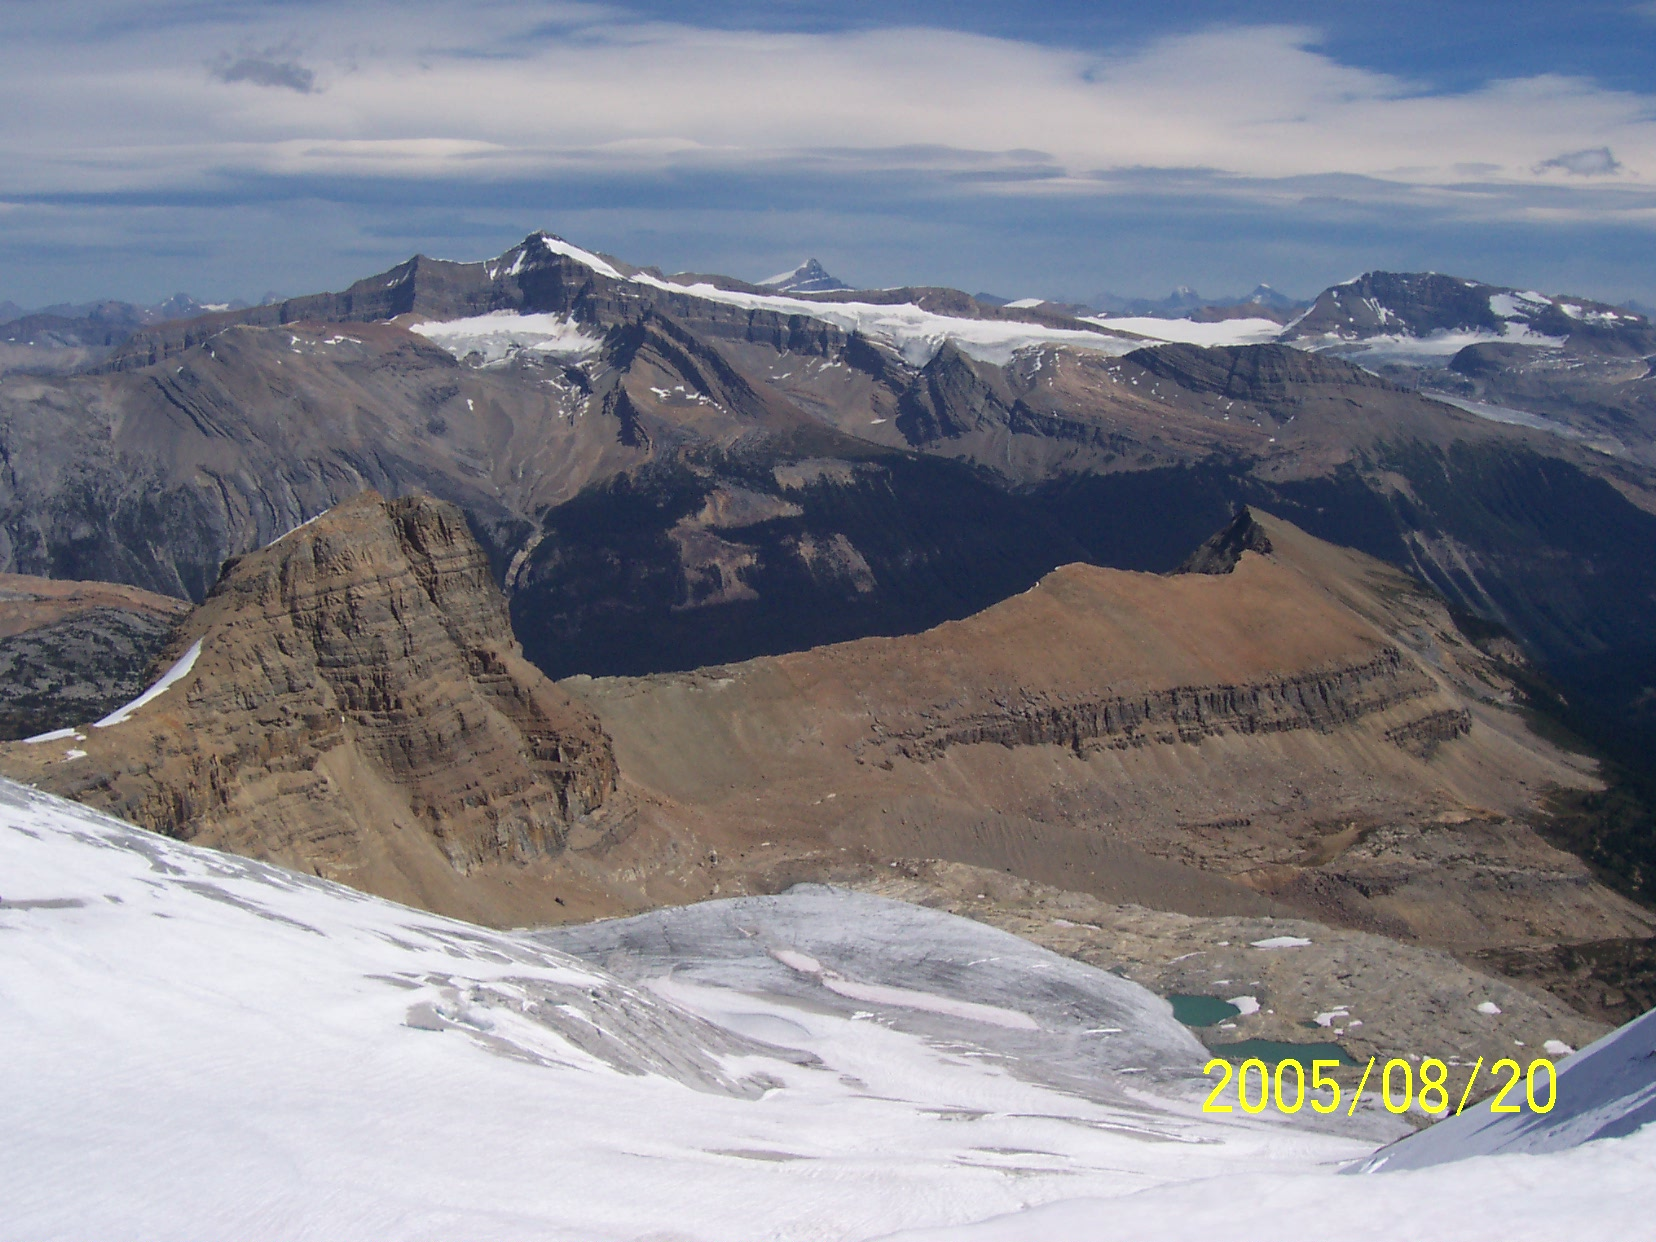 Isolated Peak Whaleback Mtn. Mt. McArthur Mt. Balfour Trolltinder Mtn. Mt. Daly Mt. Hector Yoho National Park